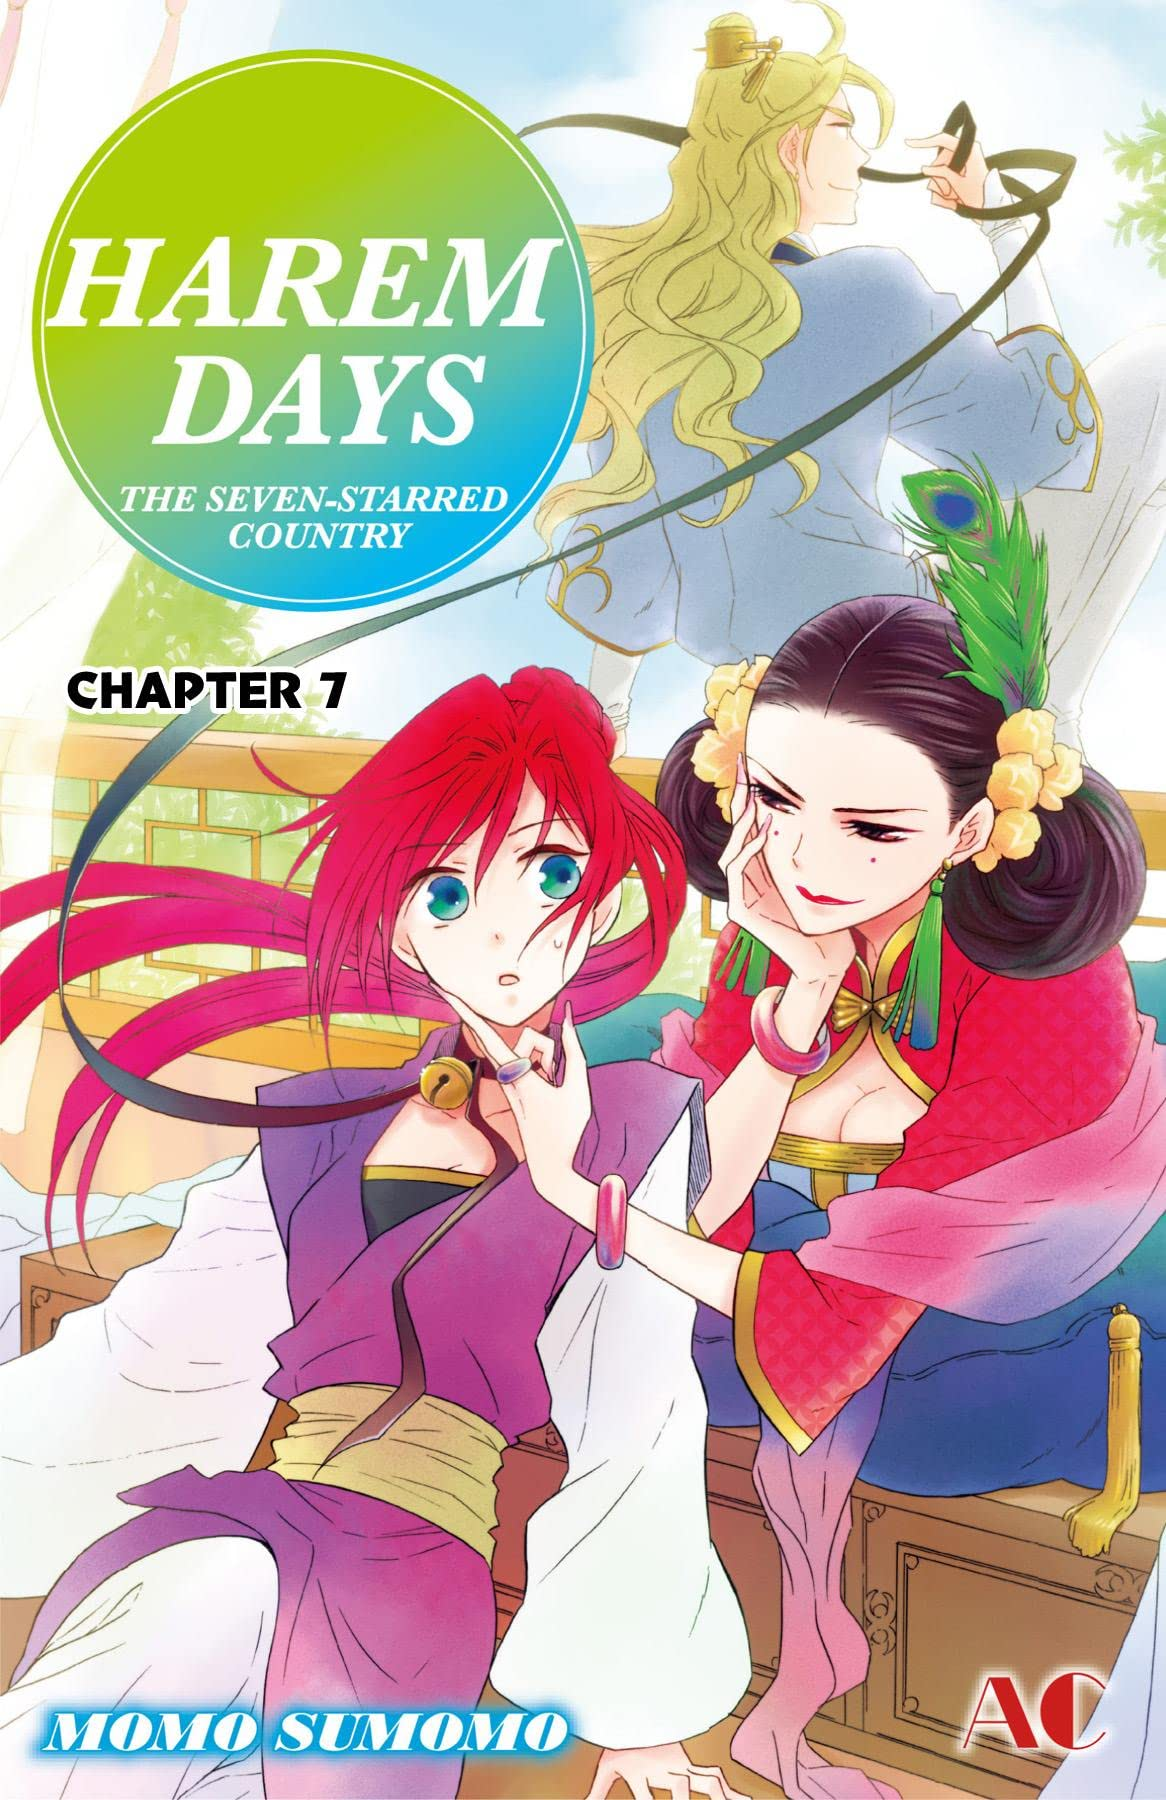 HAREM DAYS THE SEVEN-STARRED COUNTRY #7